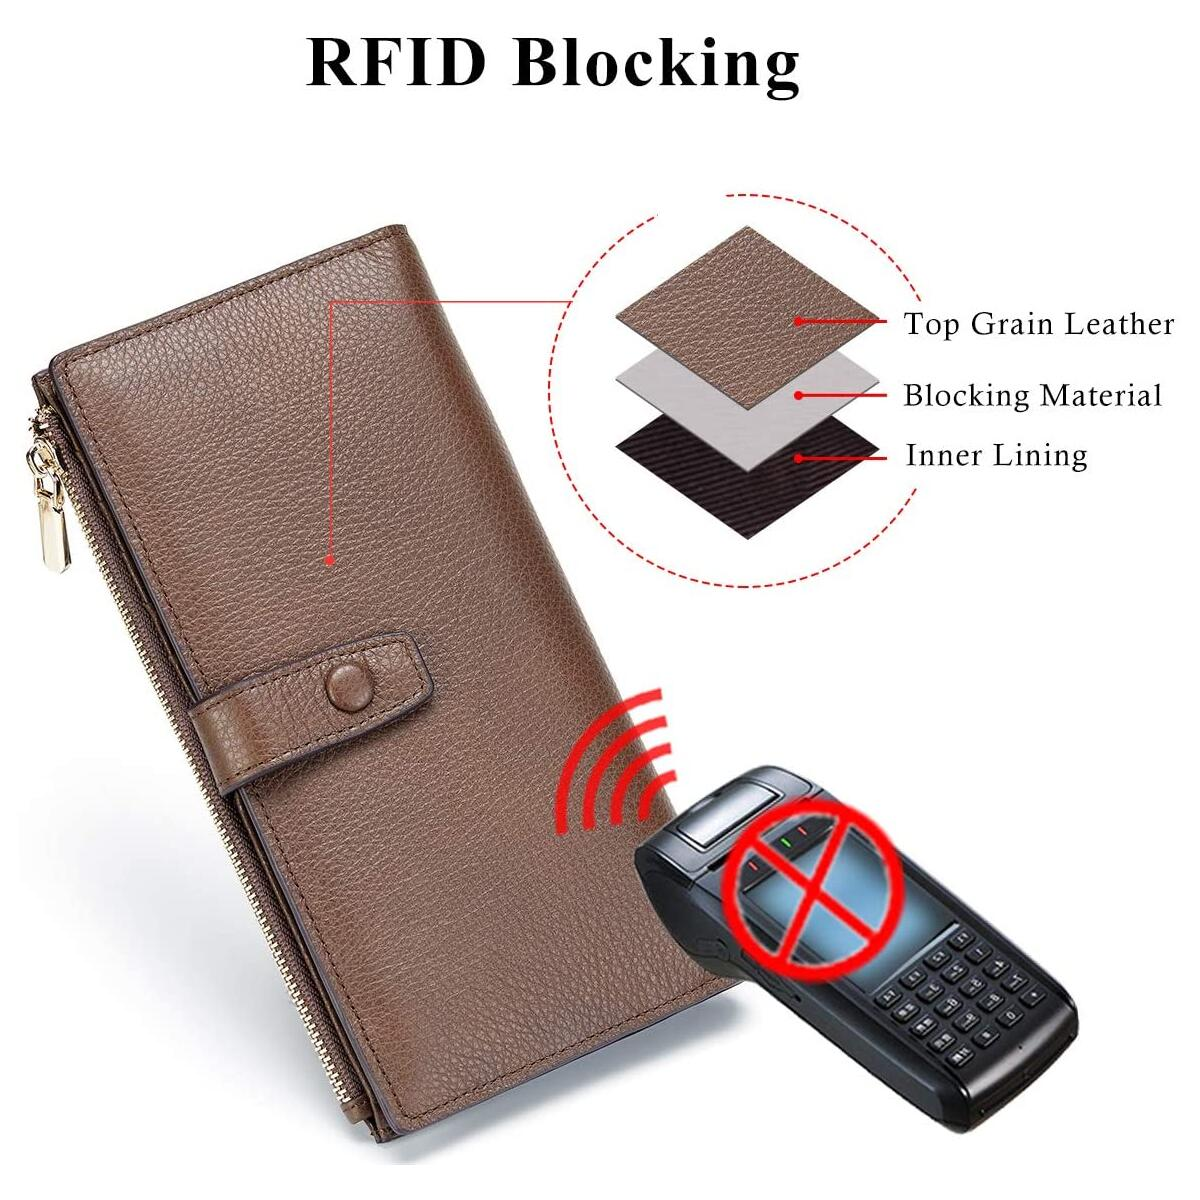 Leather Wallets for Women RFID Blocking Wallet with Check Holder Large Capacity Clutch Wallet with Zipper Pocket Pebble Leather